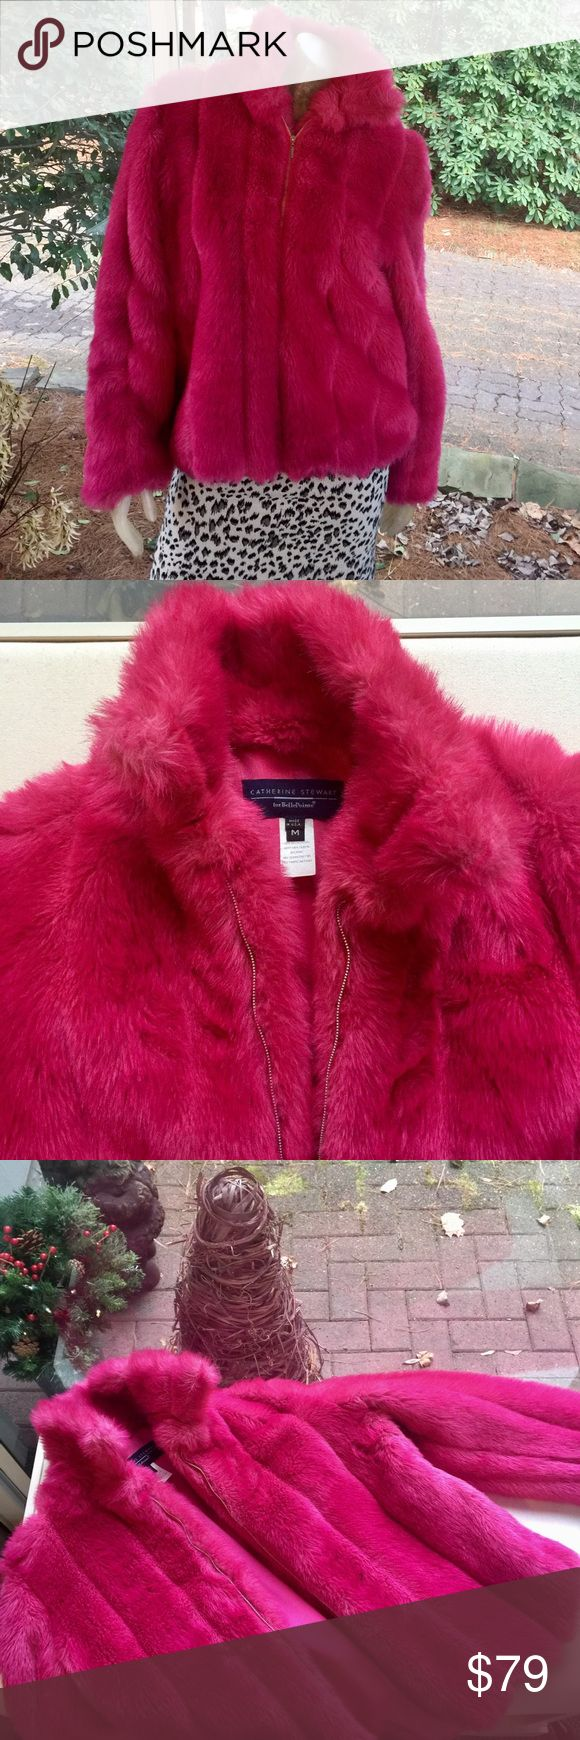 Hot Pink Faux Fur Warm New Years Eve Jacket Catherine Stewart Hot Pink Faux Fur, Lined, Warm, Zip-Up Jacket in excellent, like-new condition. Perfect for ringing in your New Year's party! Size Medium. Boutique Jackets & Coats